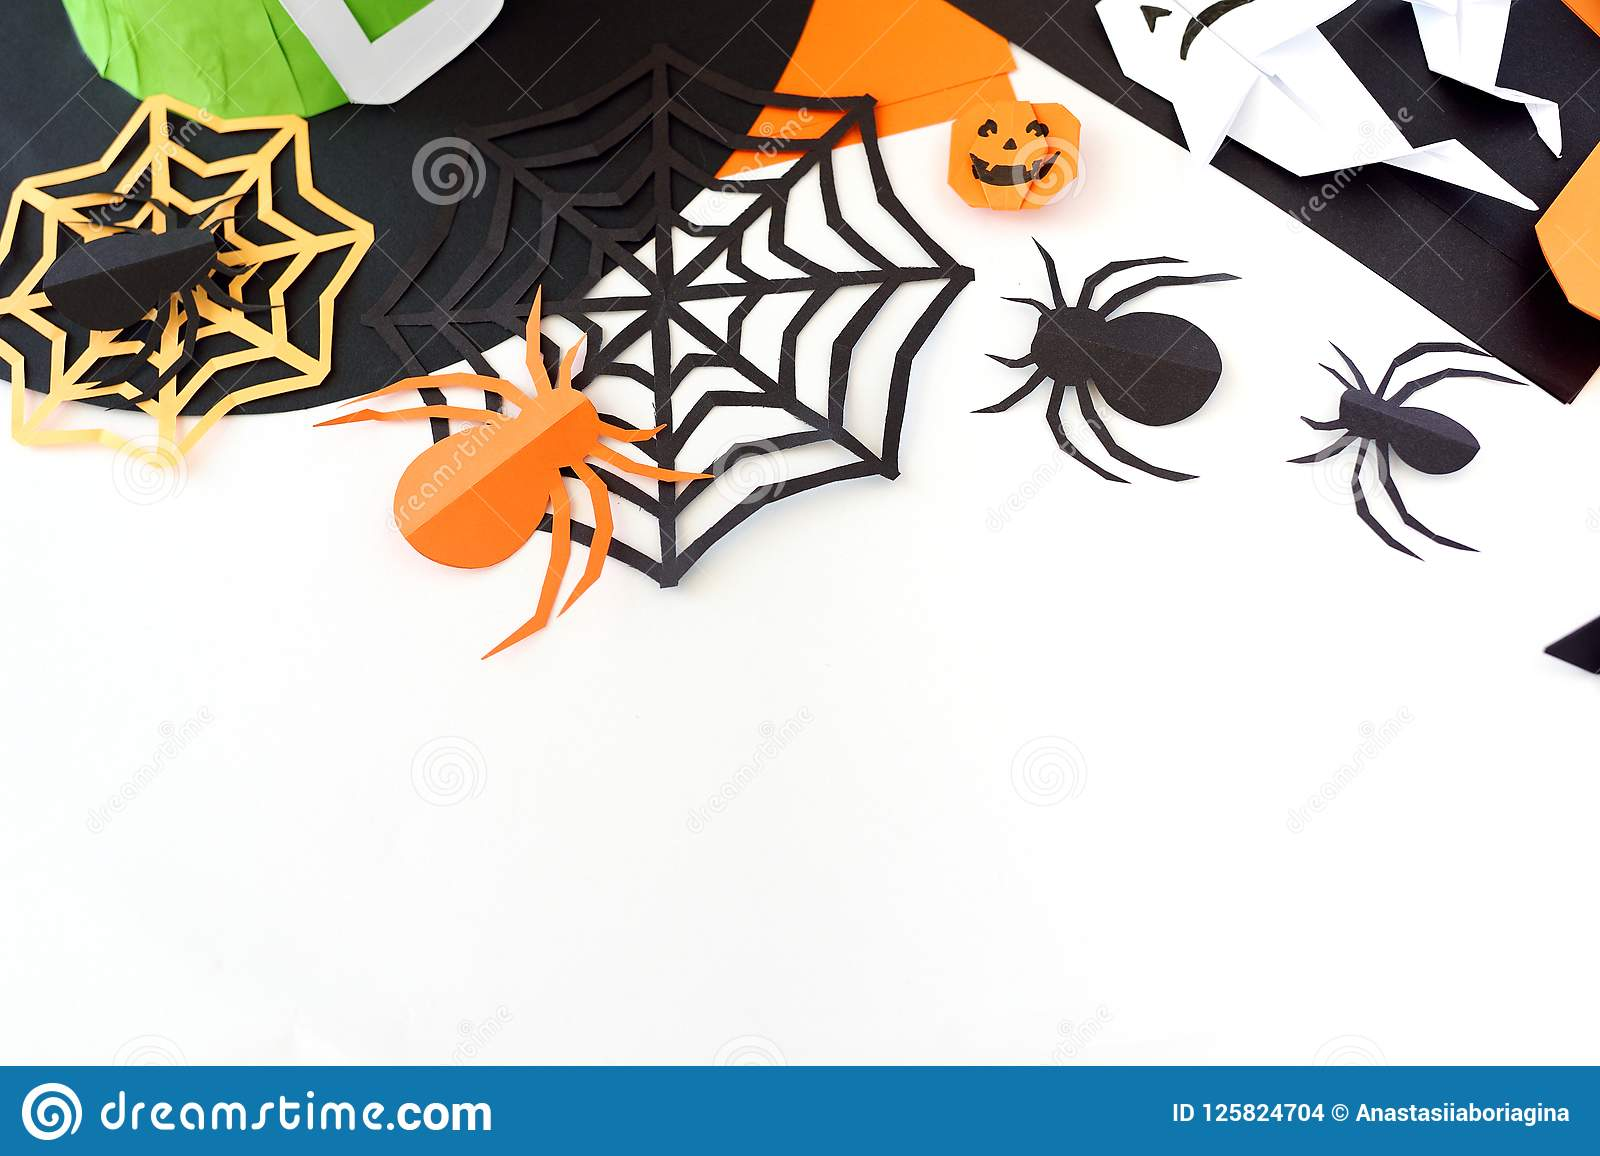 Paper Toys Origami For Halloween Preparation For A Holiday